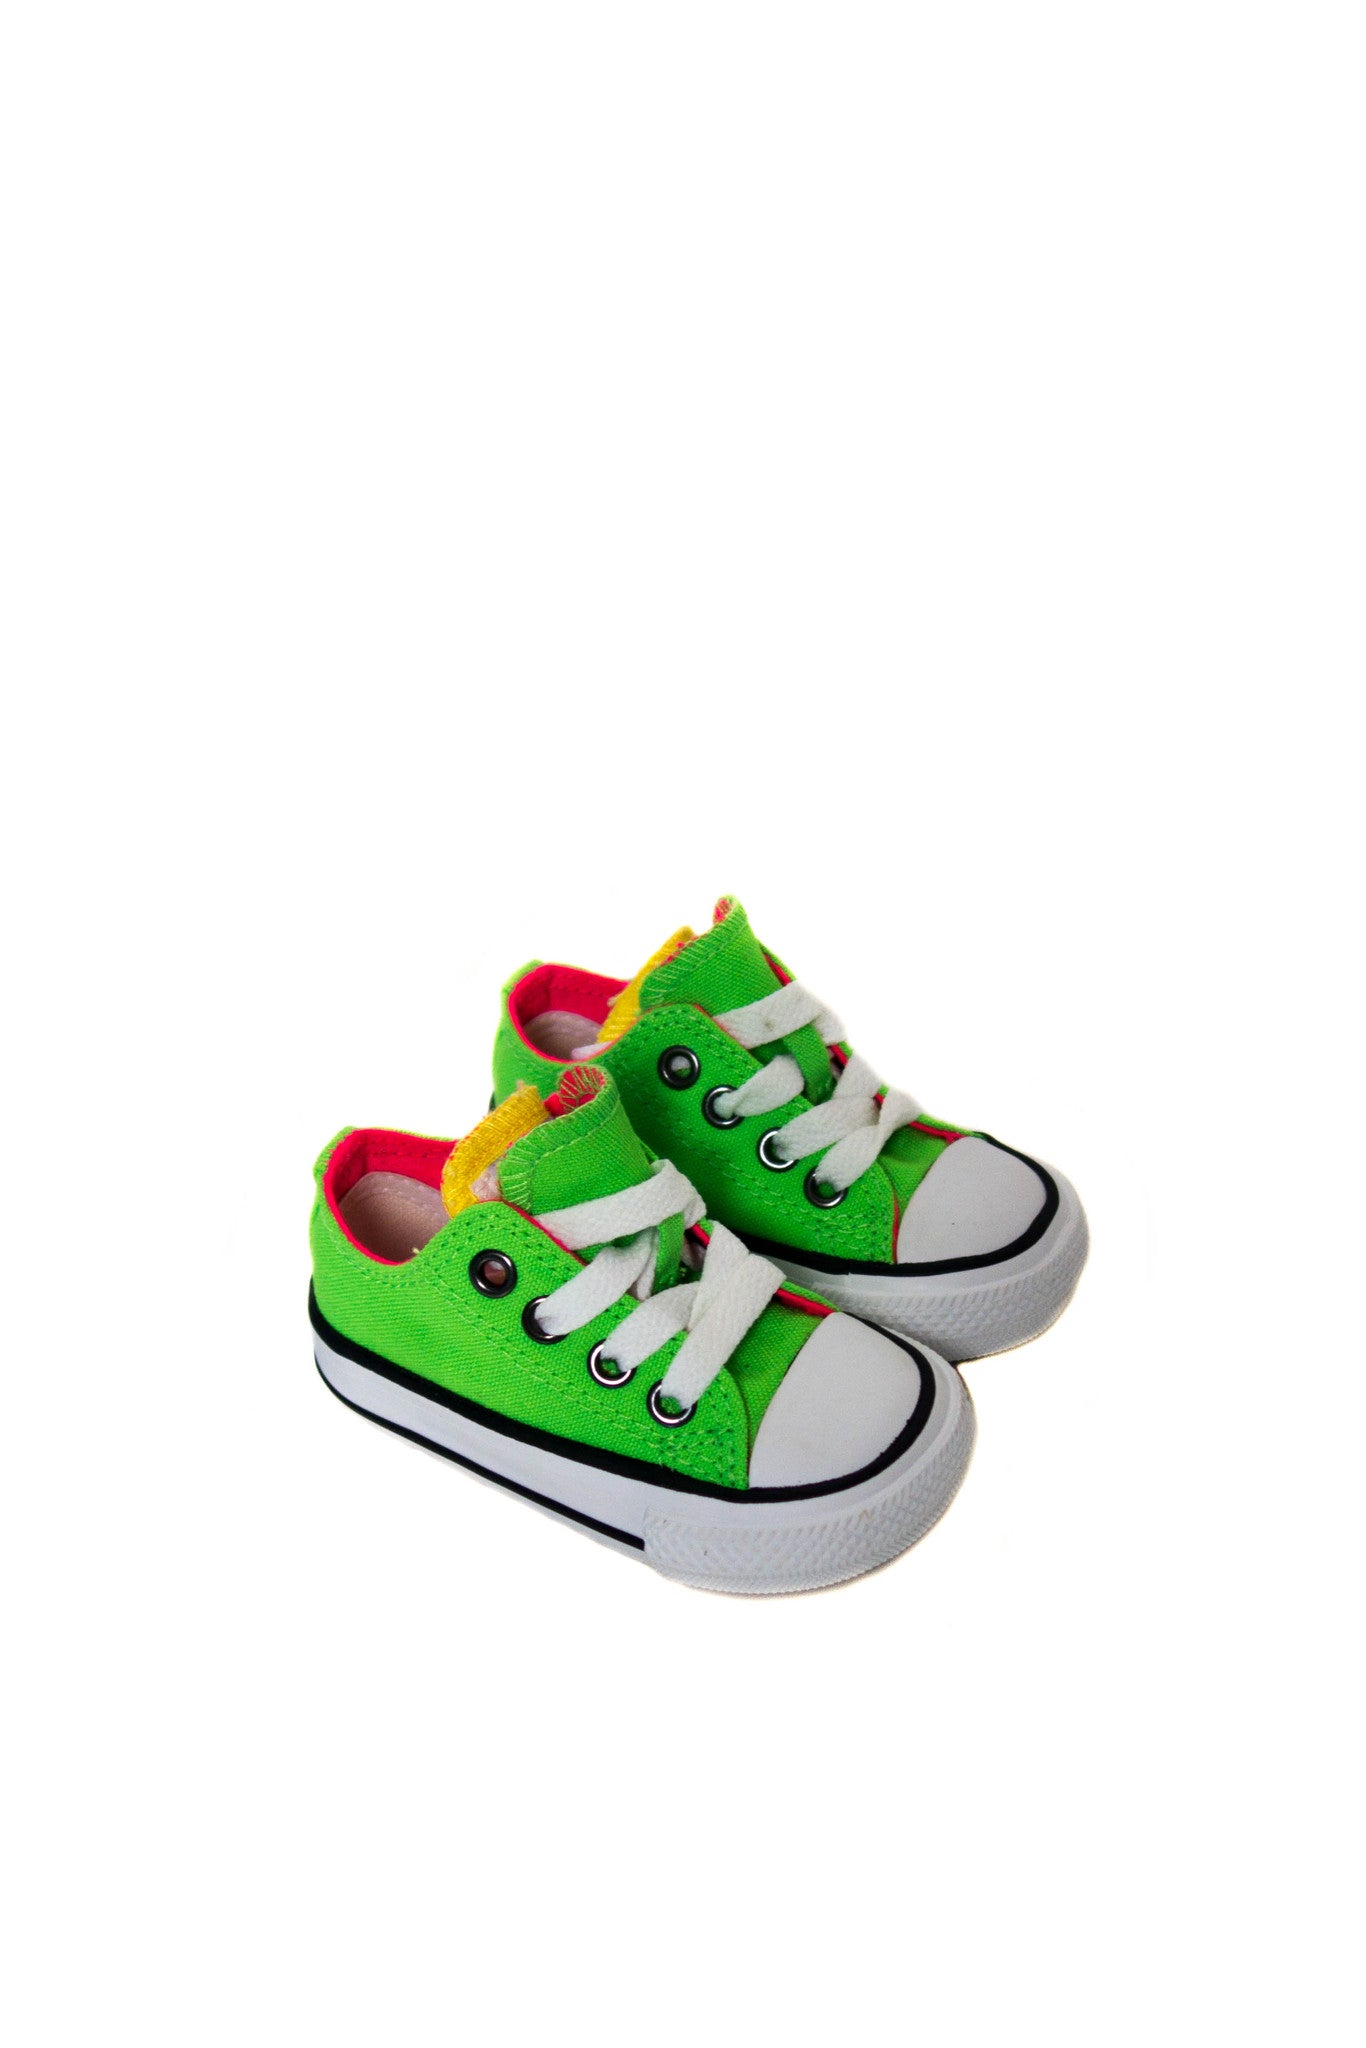 10002242 Converse Baby~Shoes 6-12M (US 3) at Retykle